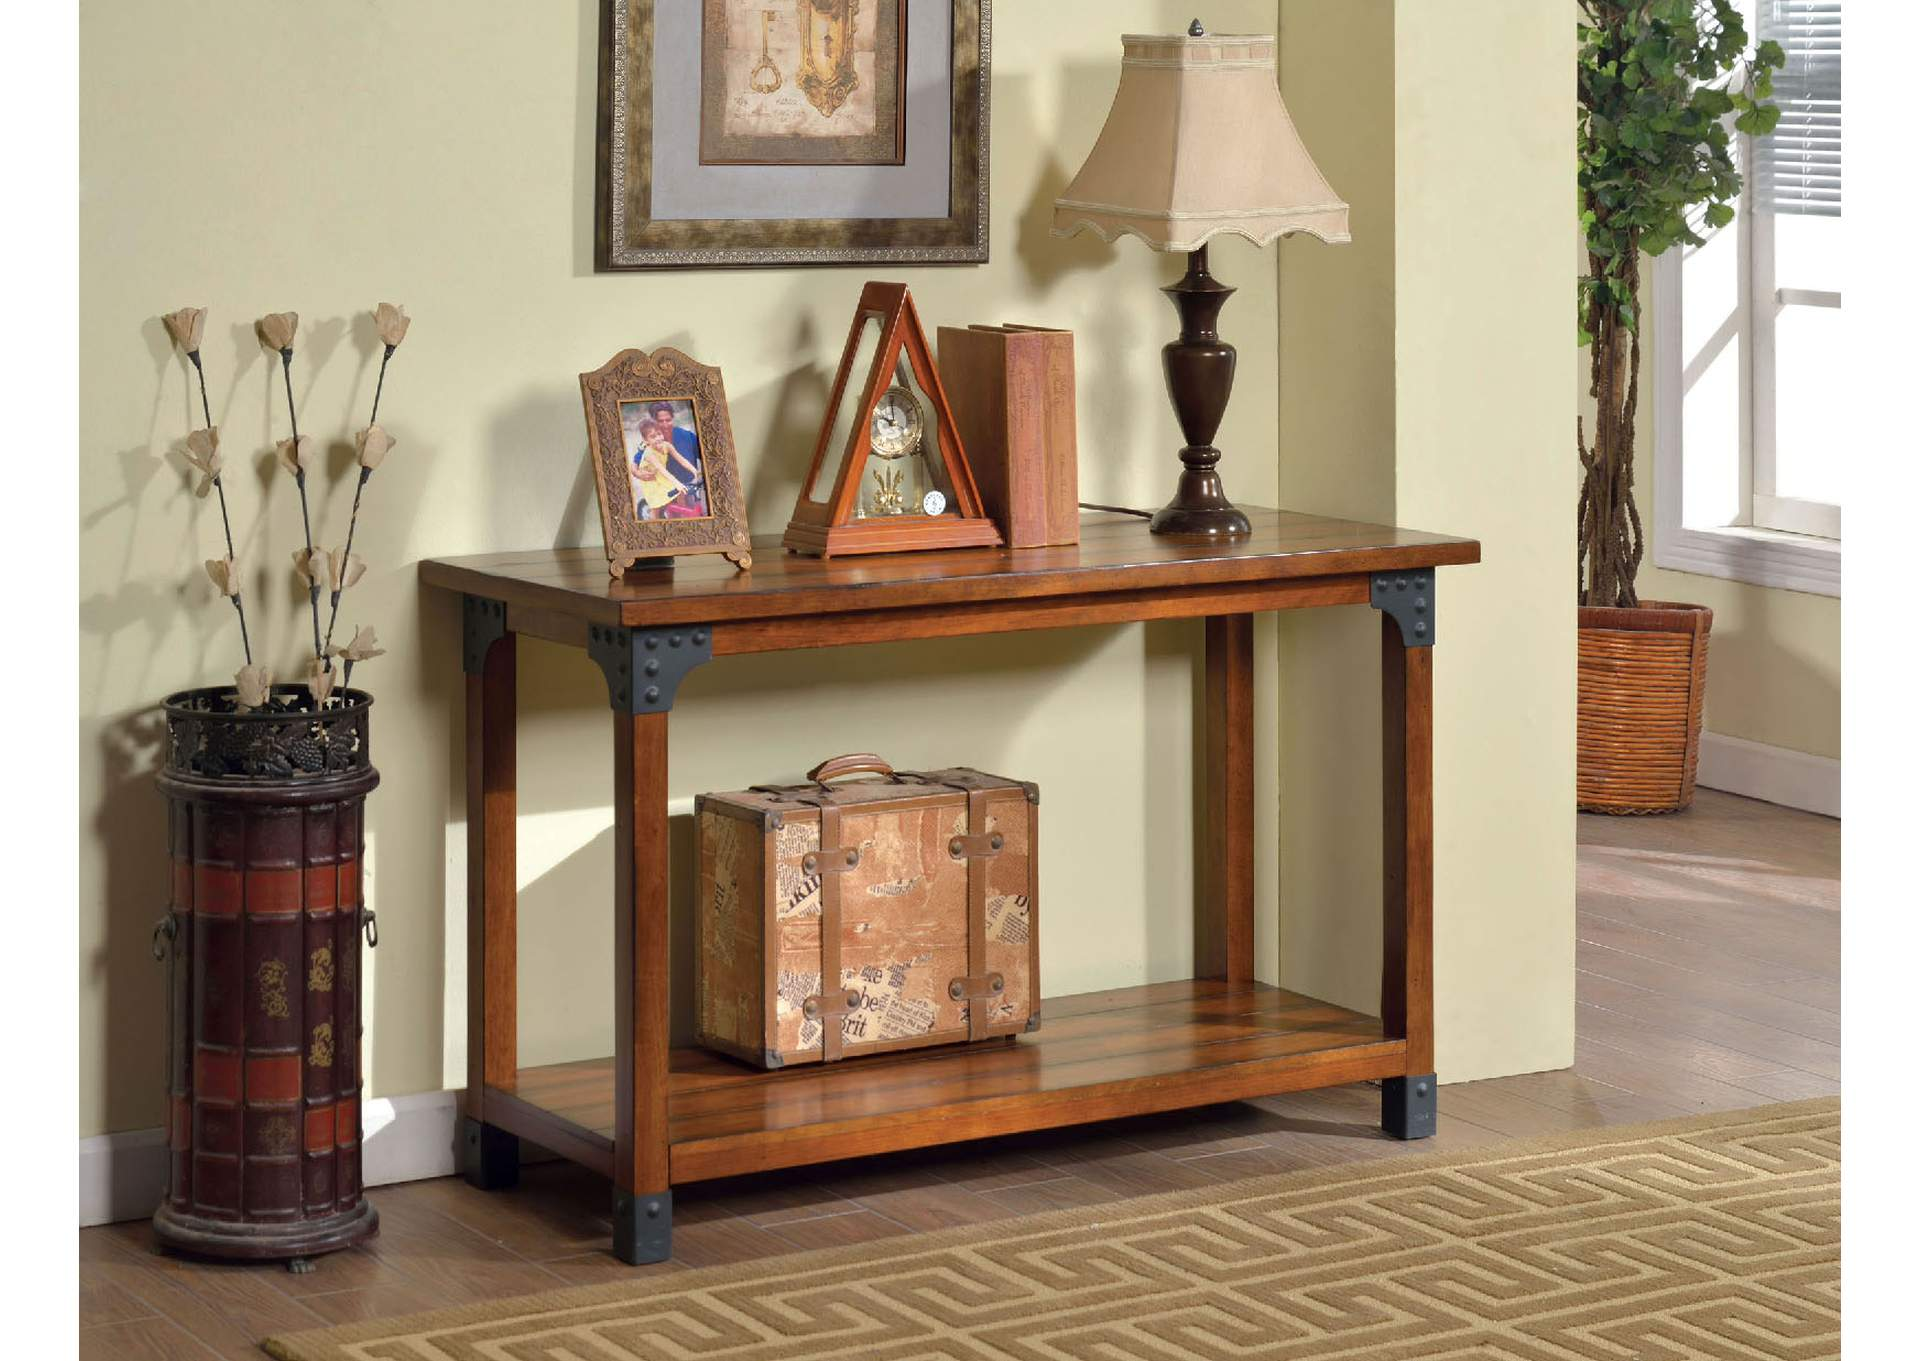 Bozeman Antique Oak Finish Sofa Table,Furniture of America